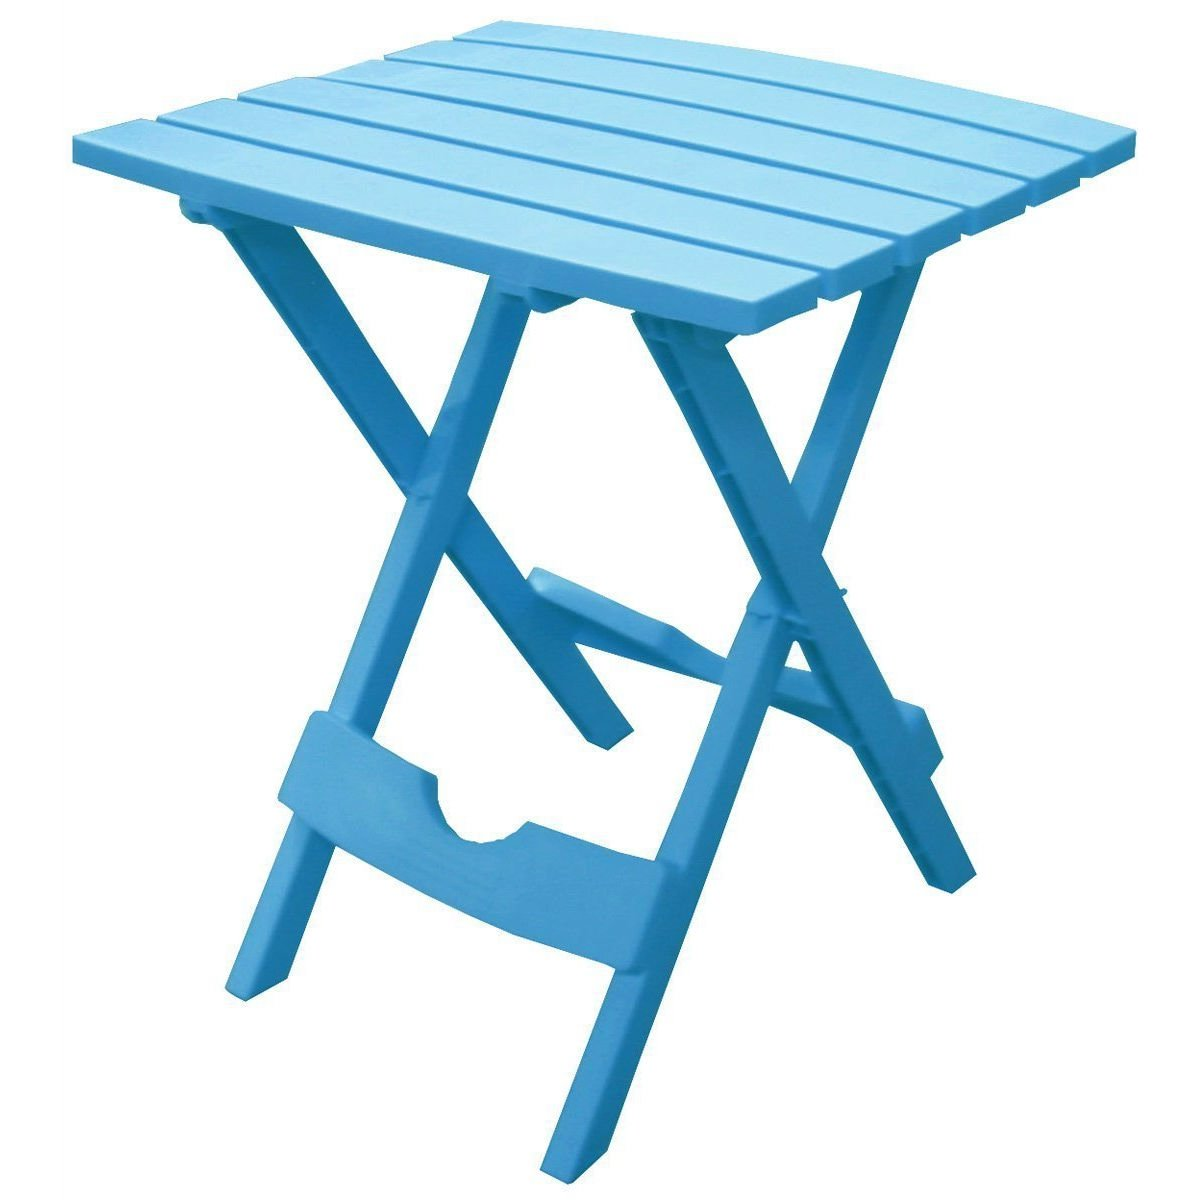 Pool blue folding side table in durable patio furniture plastic